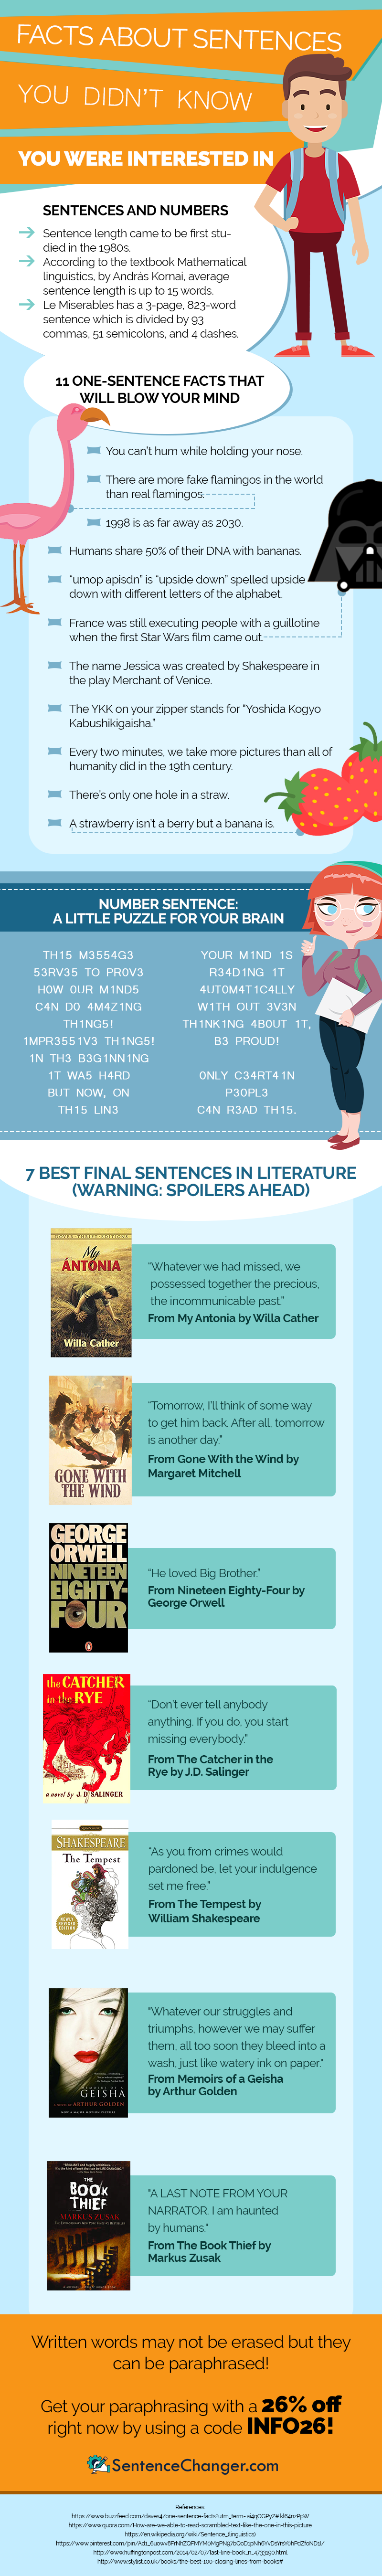 facts about sentences infographic